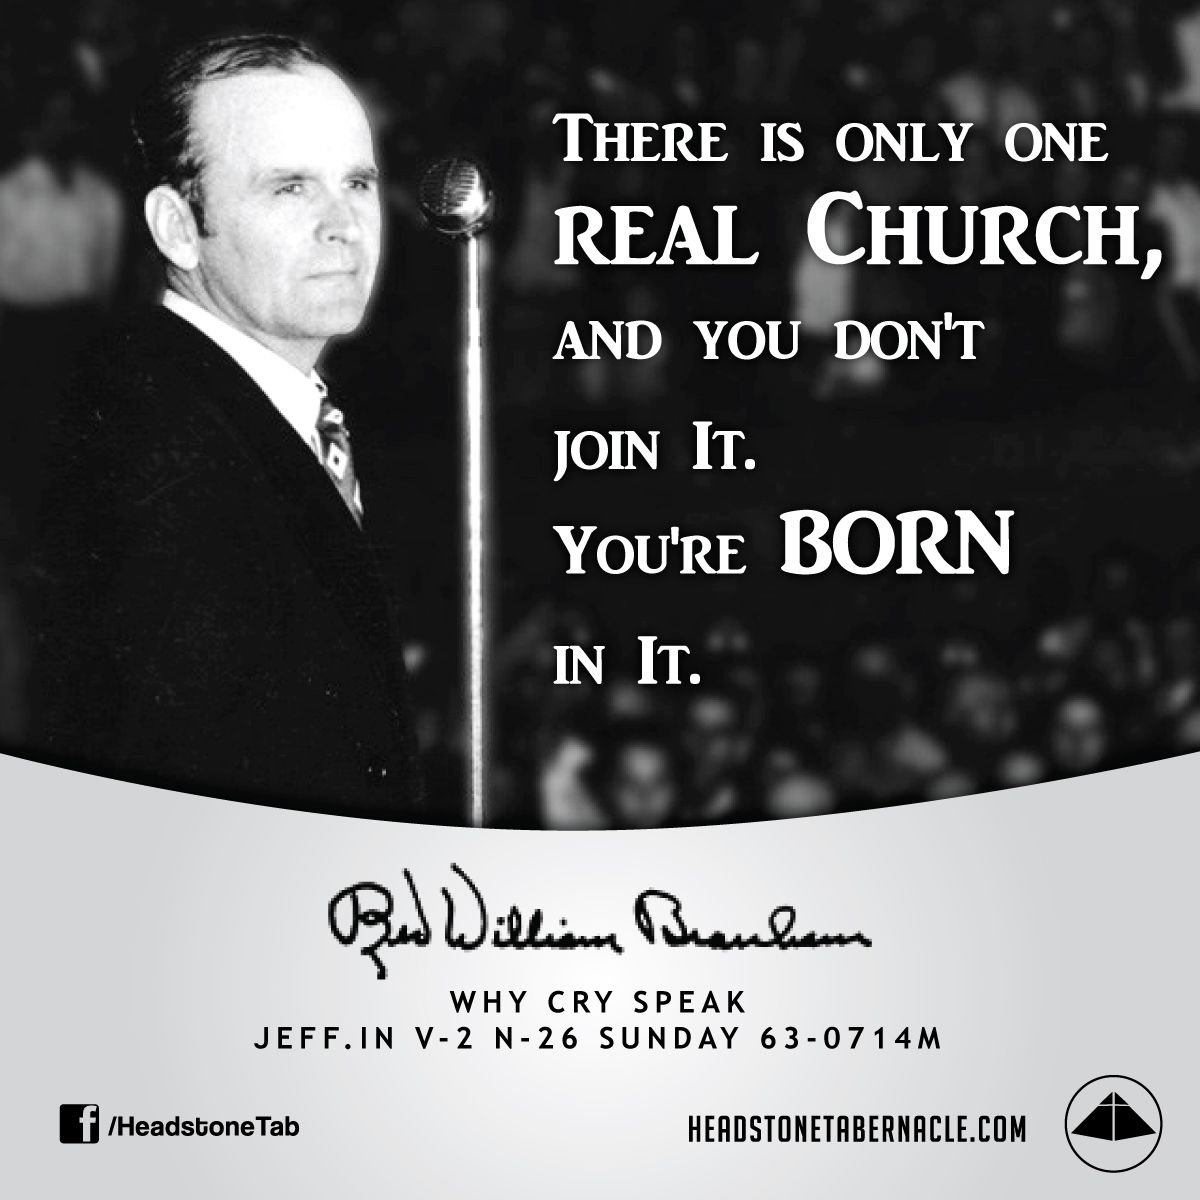 Voice Of God Recordings Quote Of The Day: There Is Only One Real Church, And You Don't Join It. You